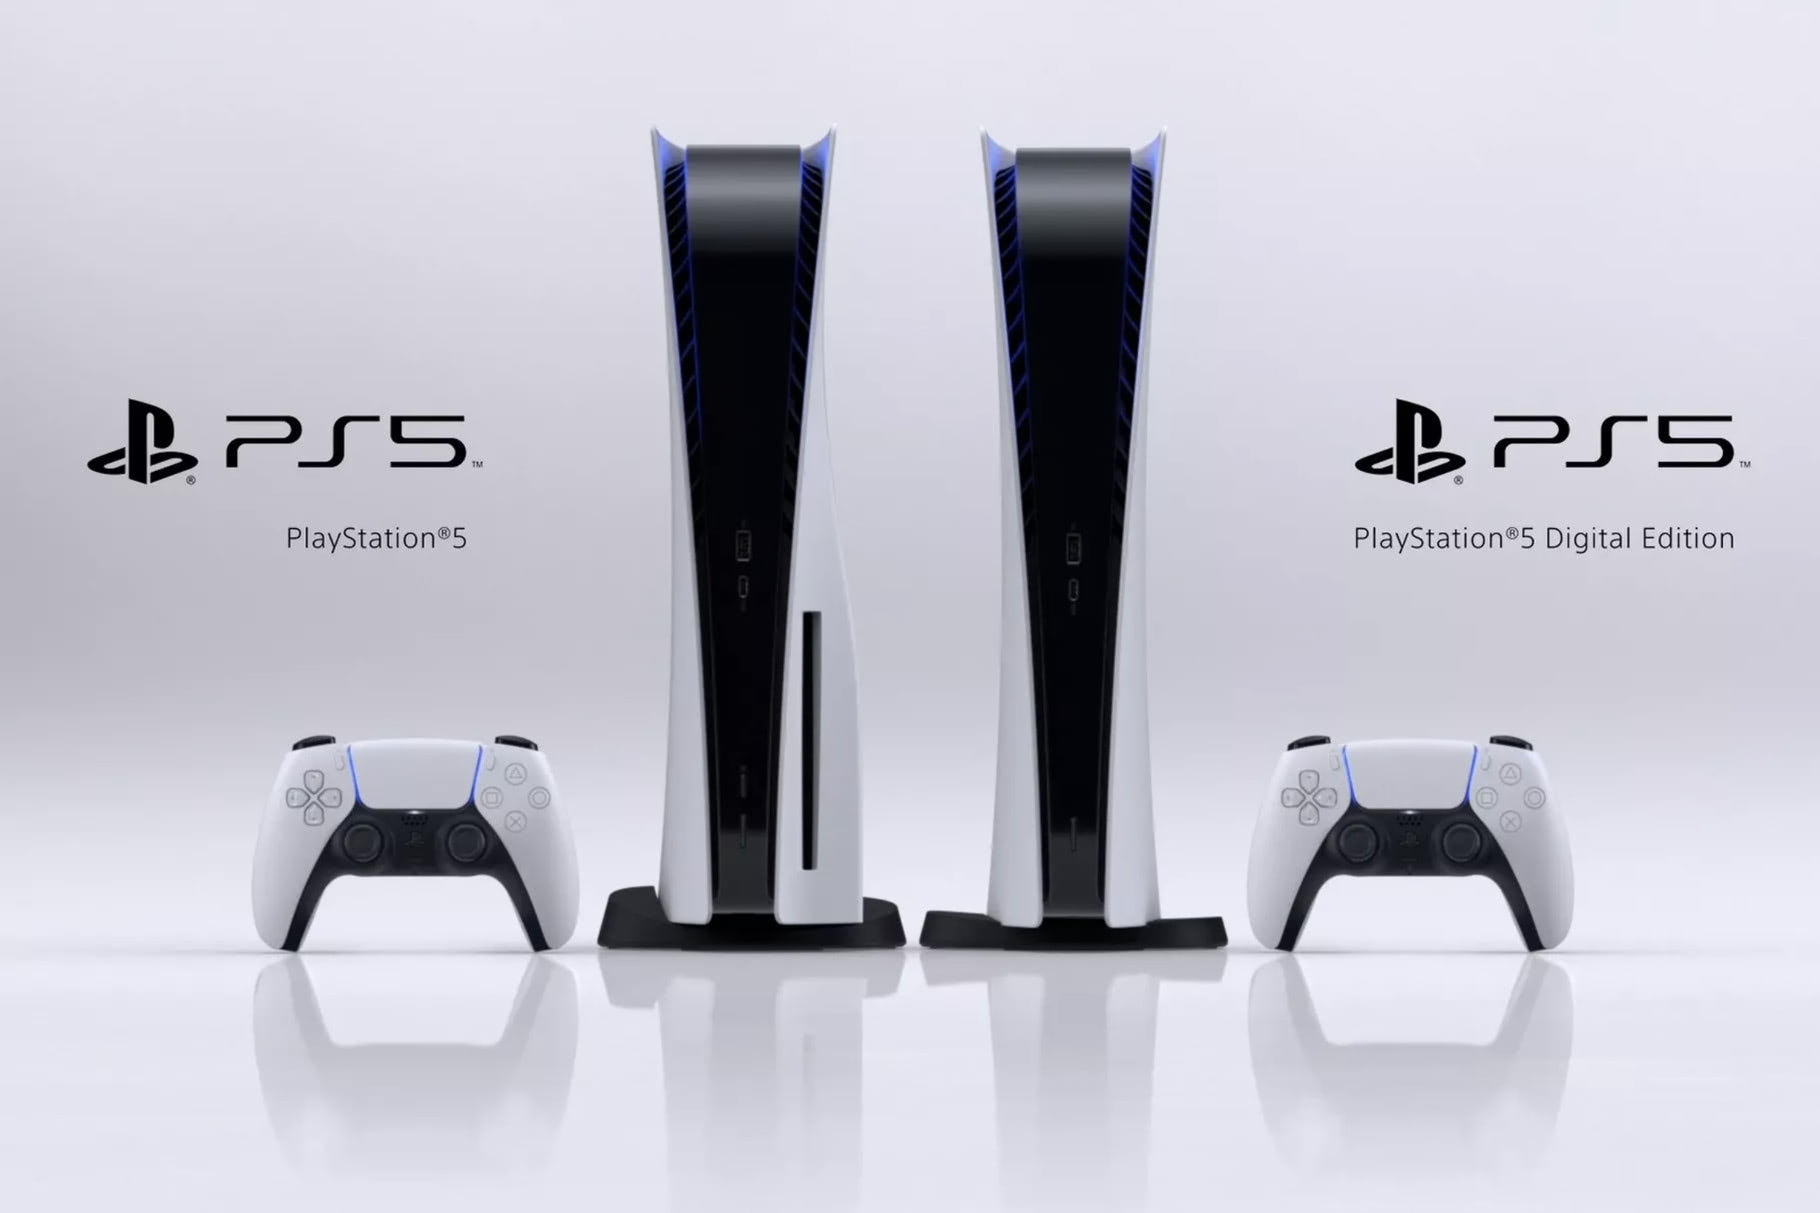 The PS5 and the possibility of streaming only DJ gear 3